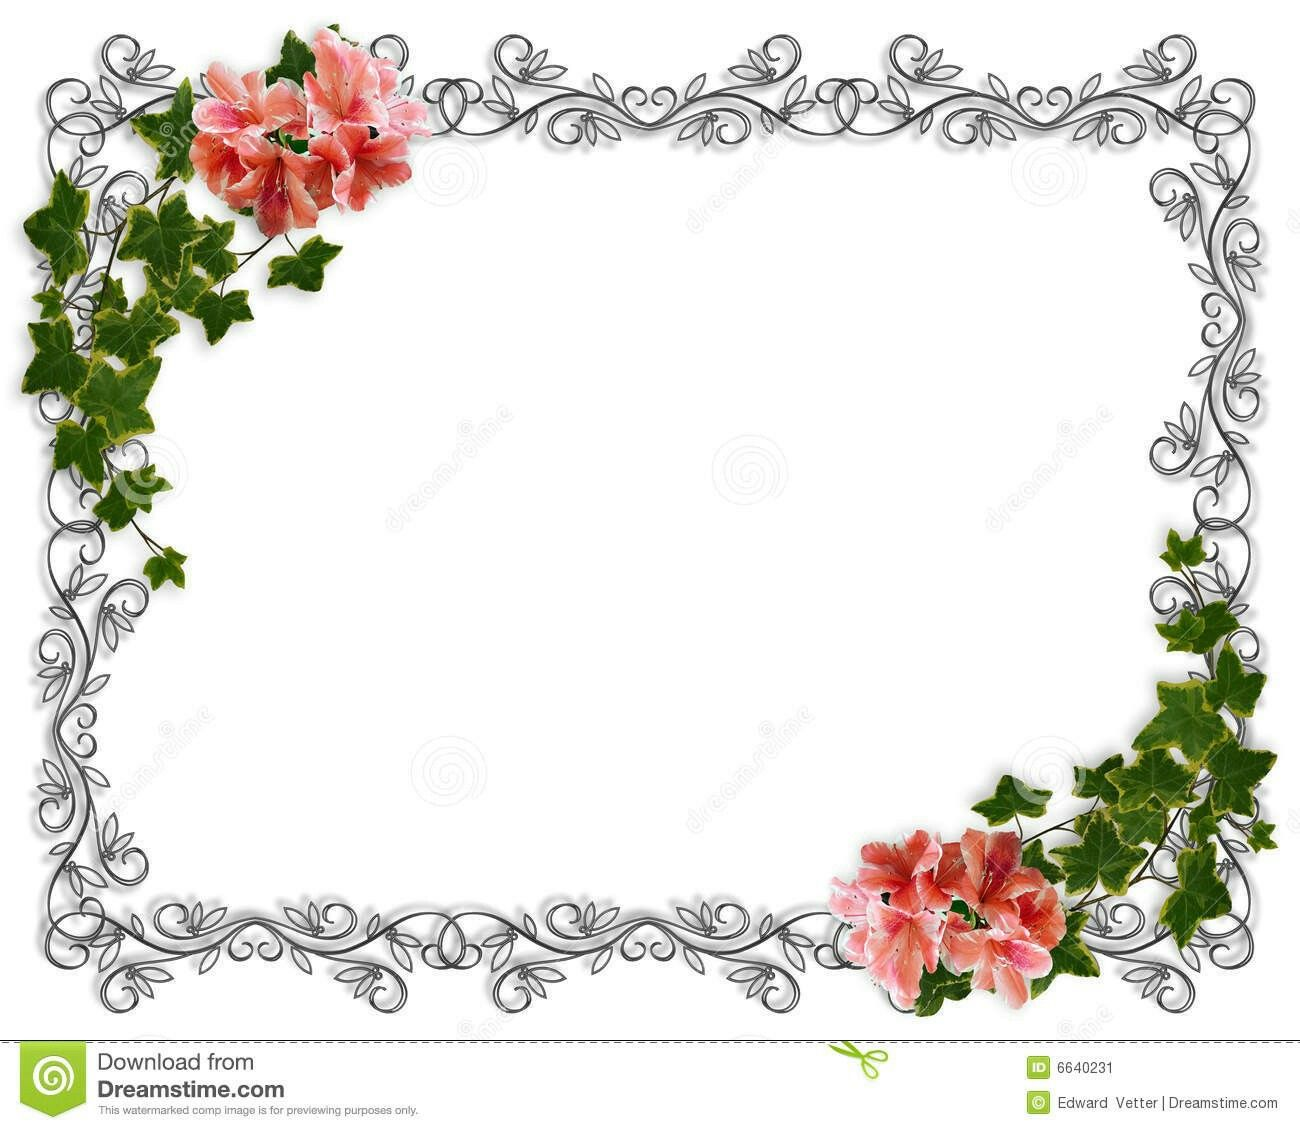 Pin by fadiyah muhammad on Clips and Frames | Wedding ...